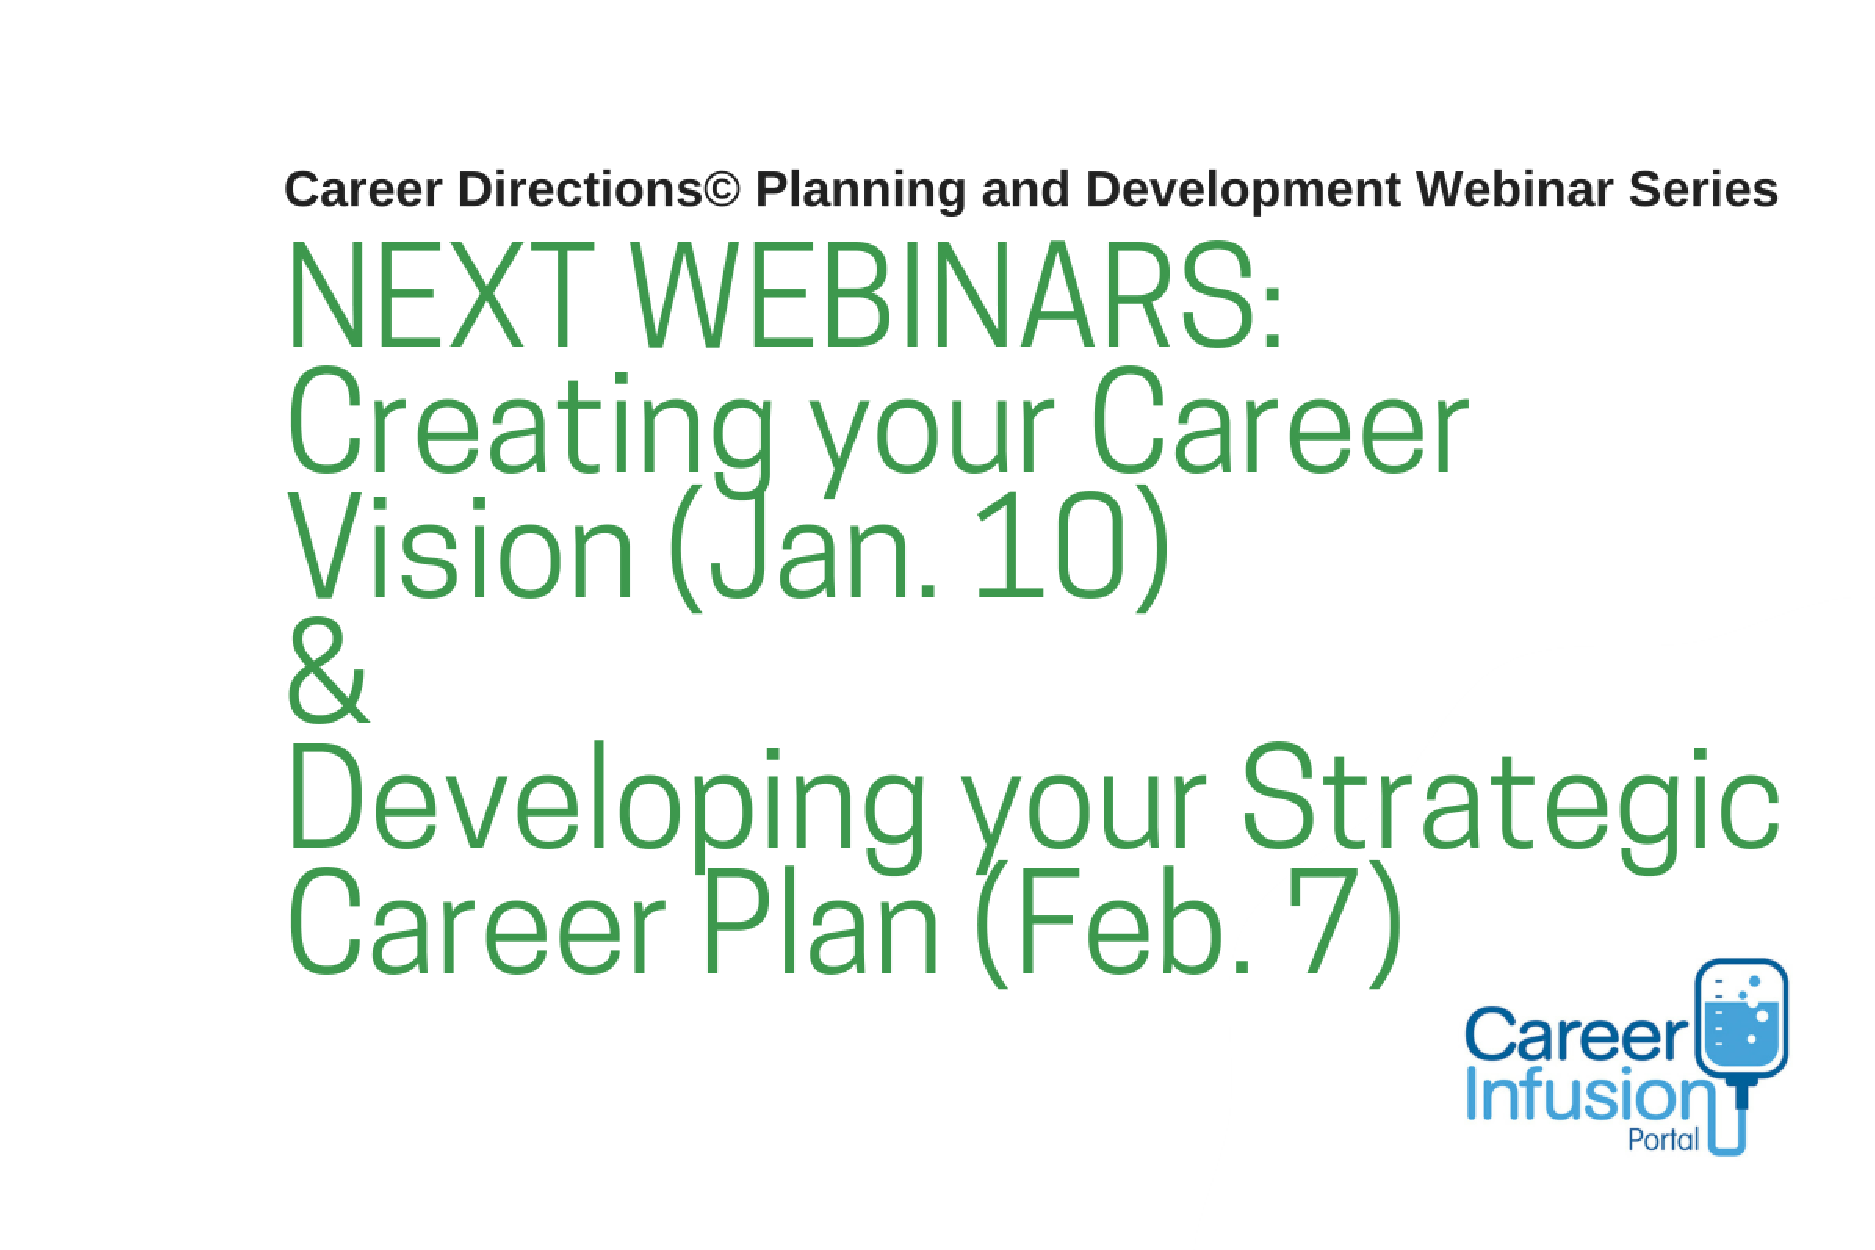 ad_webinar_careerdirections4-5_visioning_planning